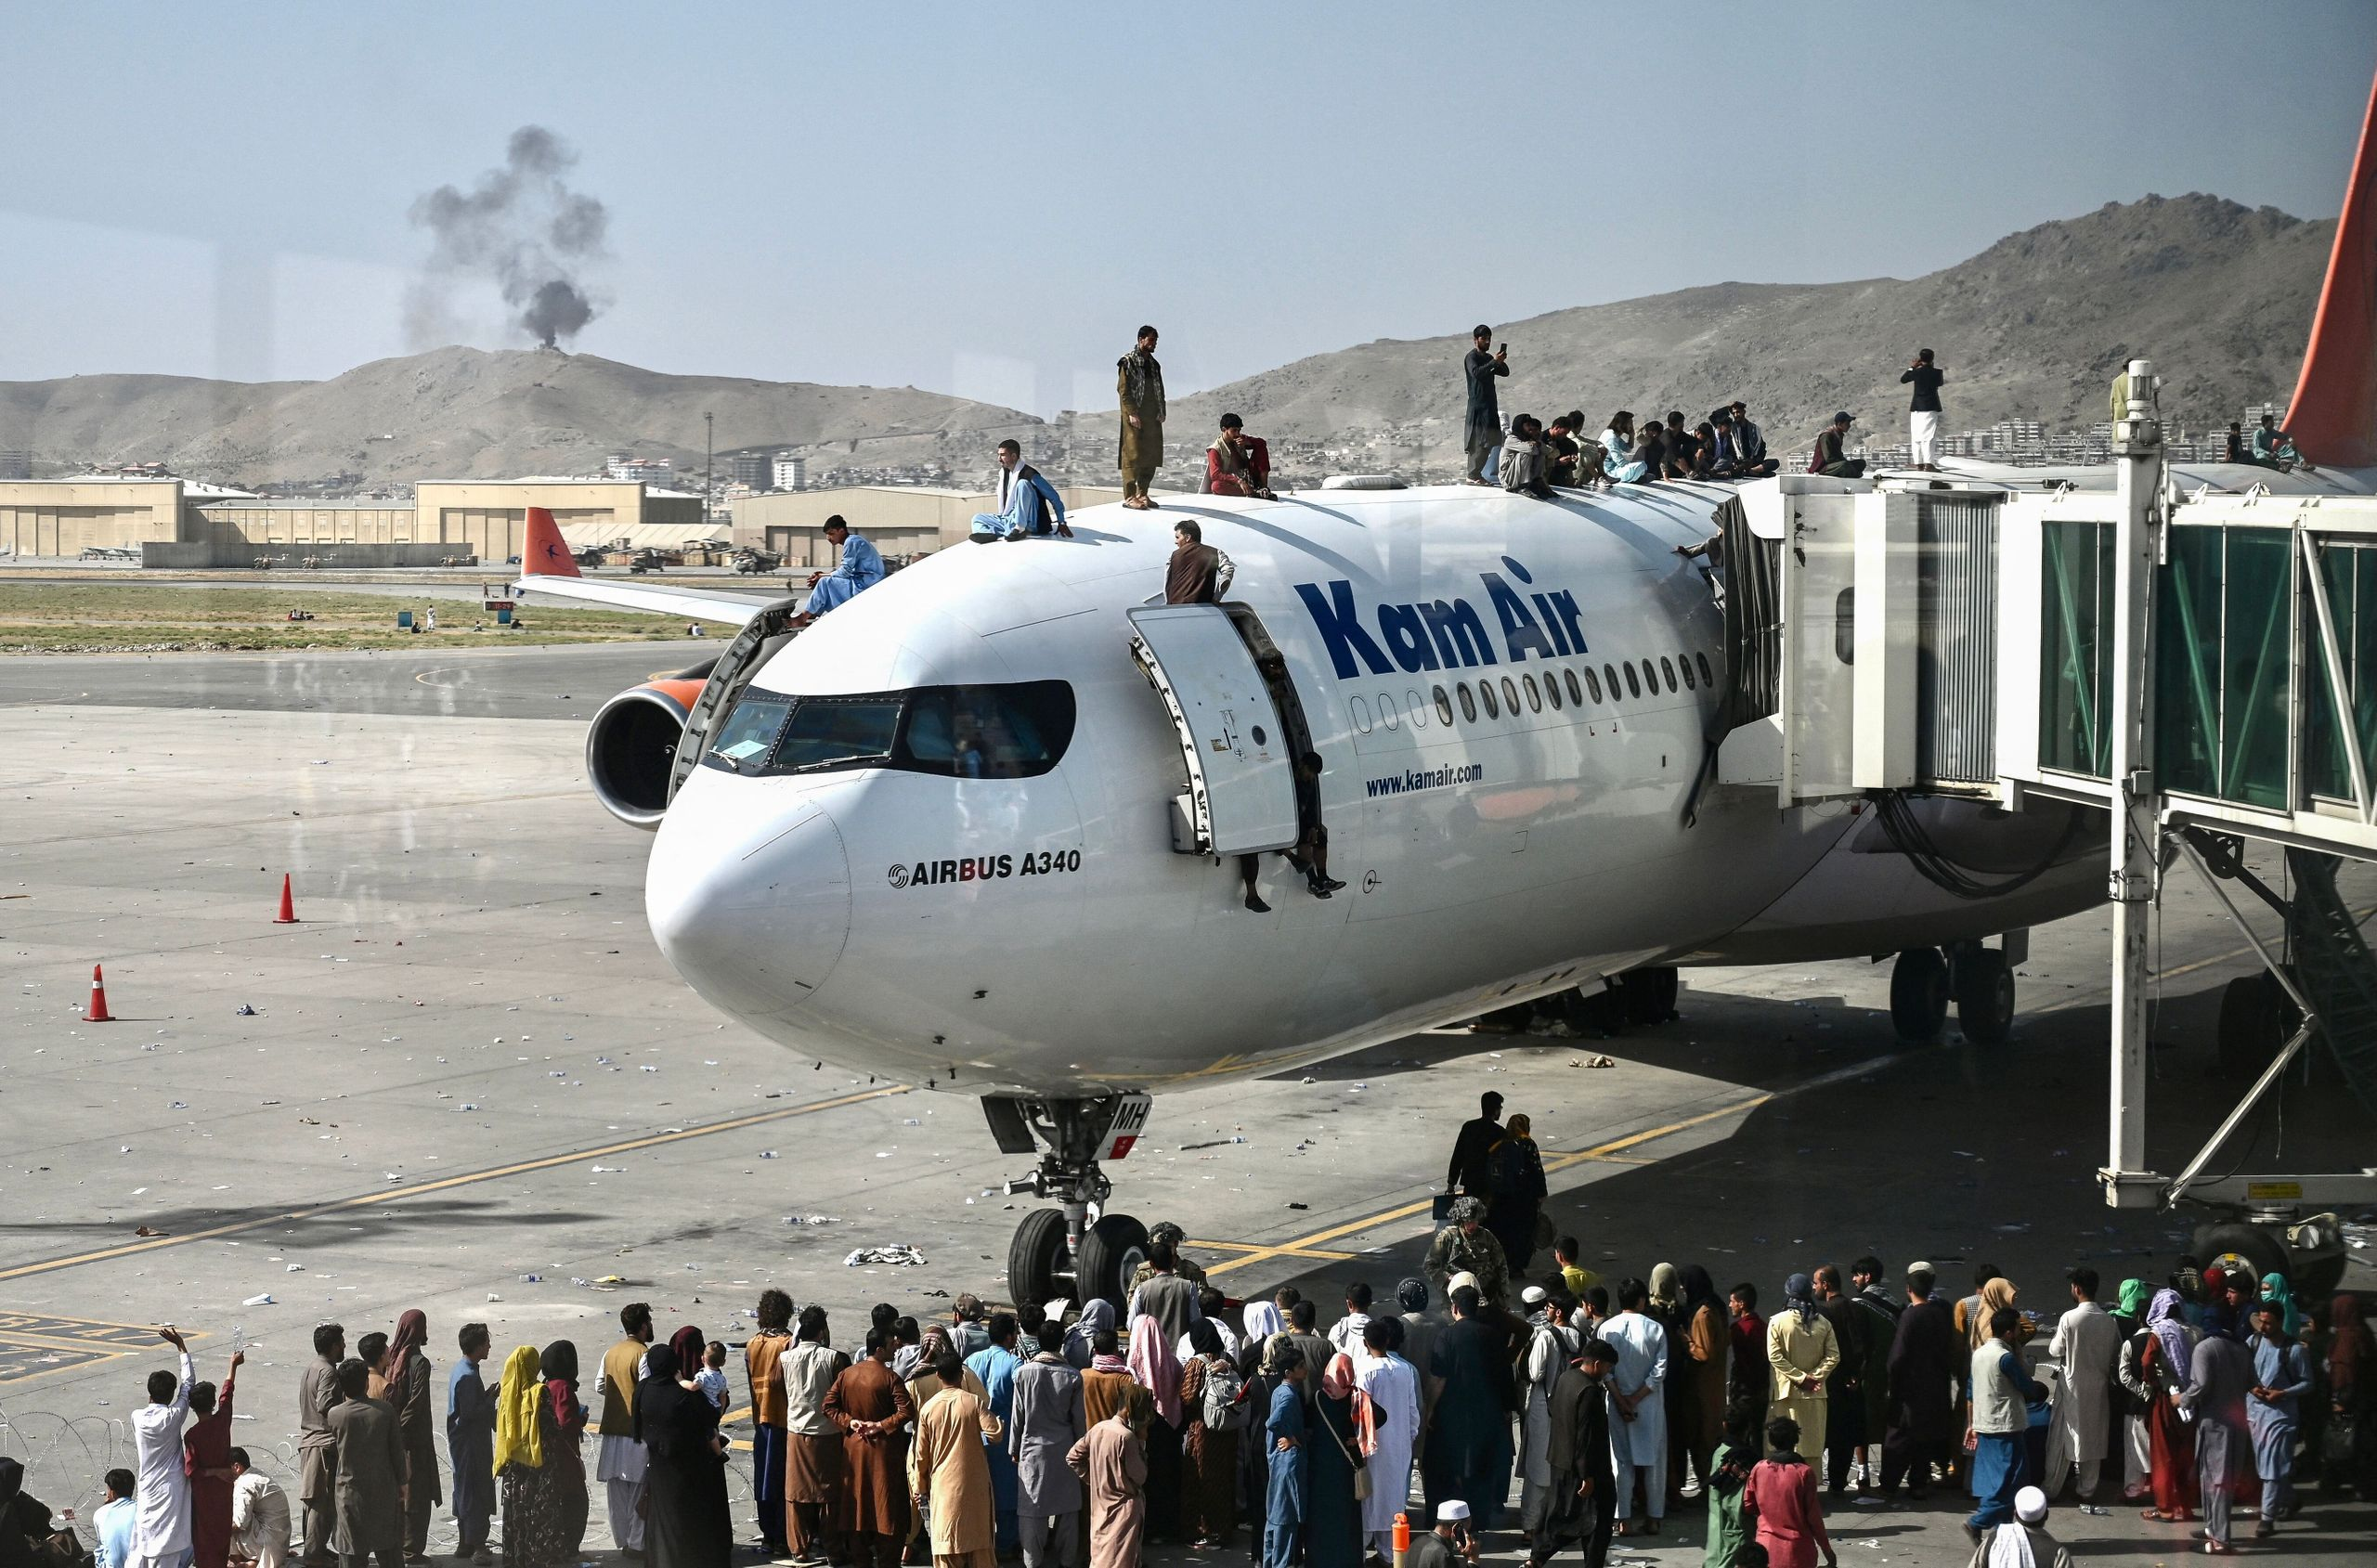 More than 600 fleeing Afghans cram into dramatic US military flight